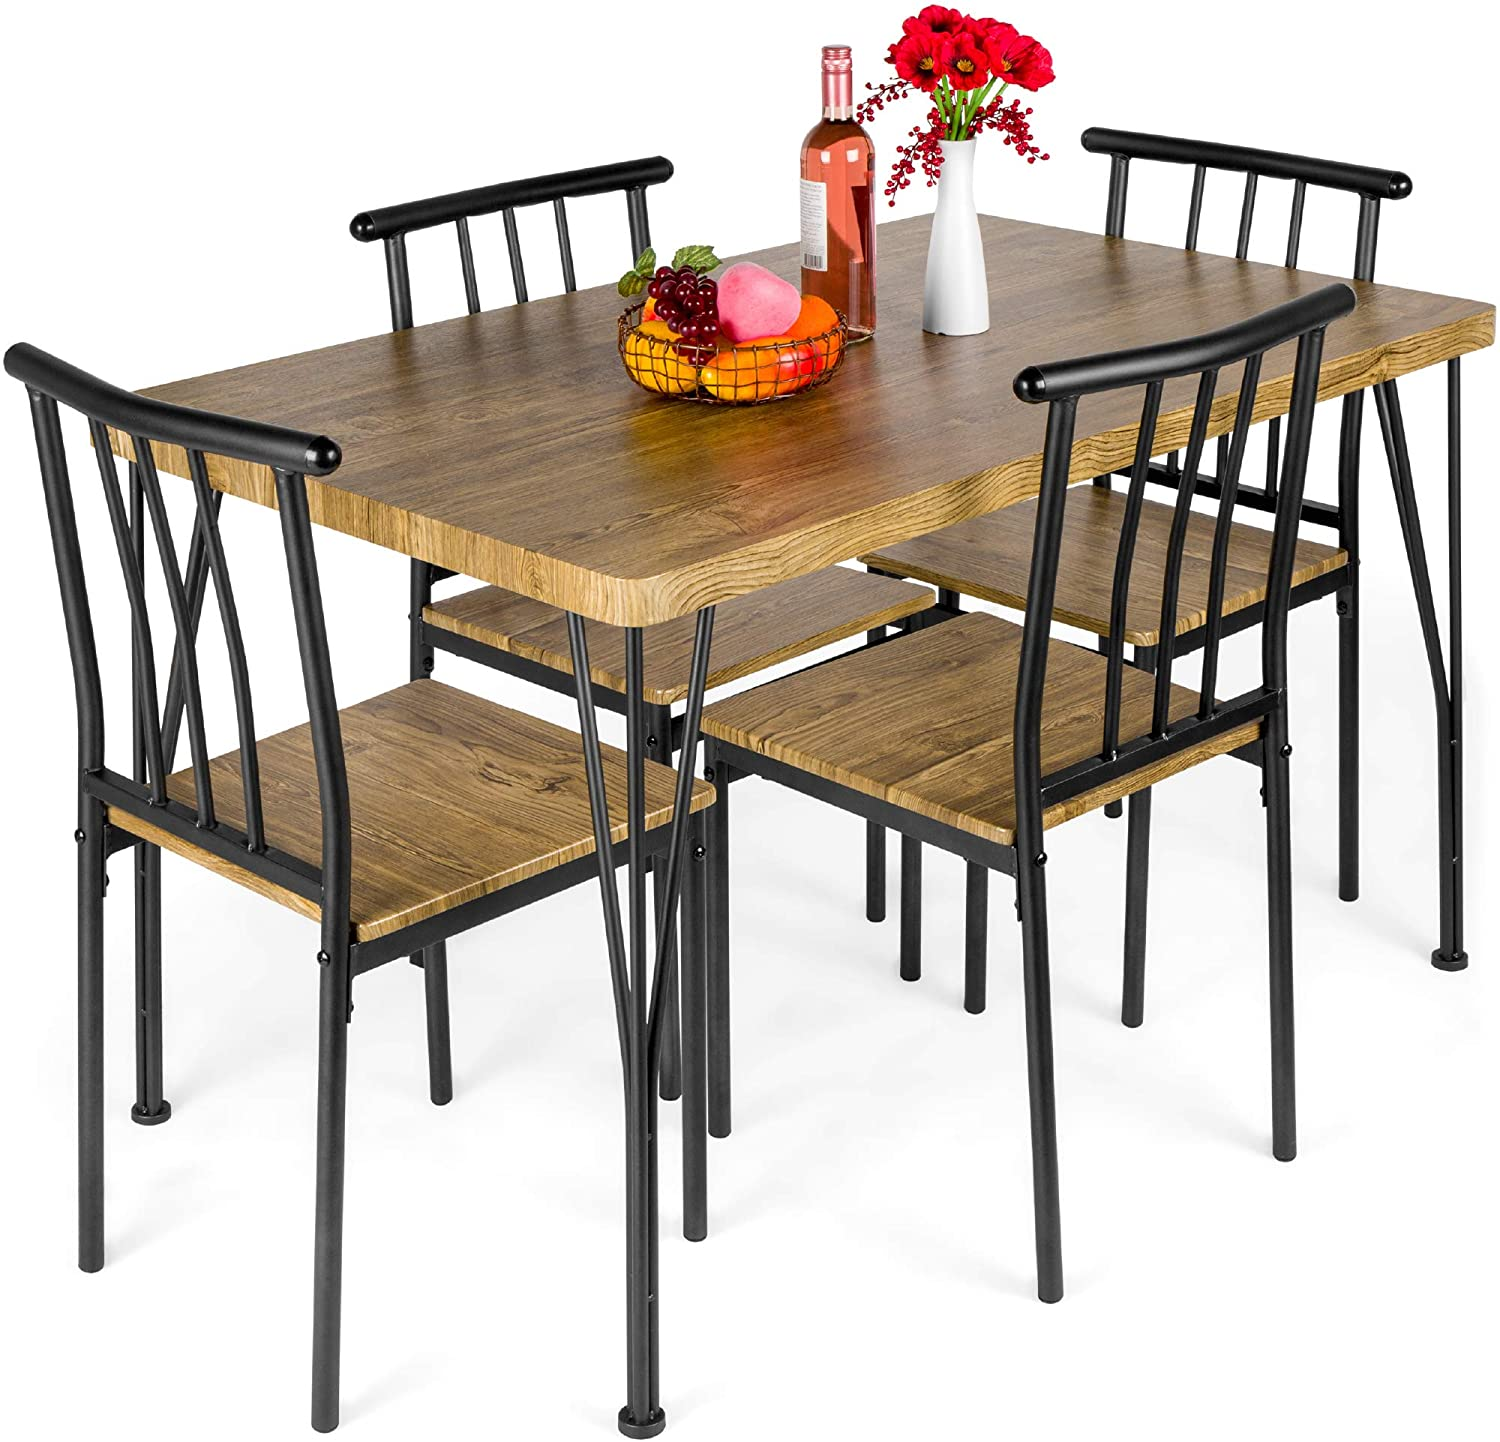 Best Choice Products 9 Piece Metal and Wood Indoor Modern Rectangular  Dining Table Furniture Set for Kitchen, Dining Room, Dinette, Breakfast  Nook w/ ...